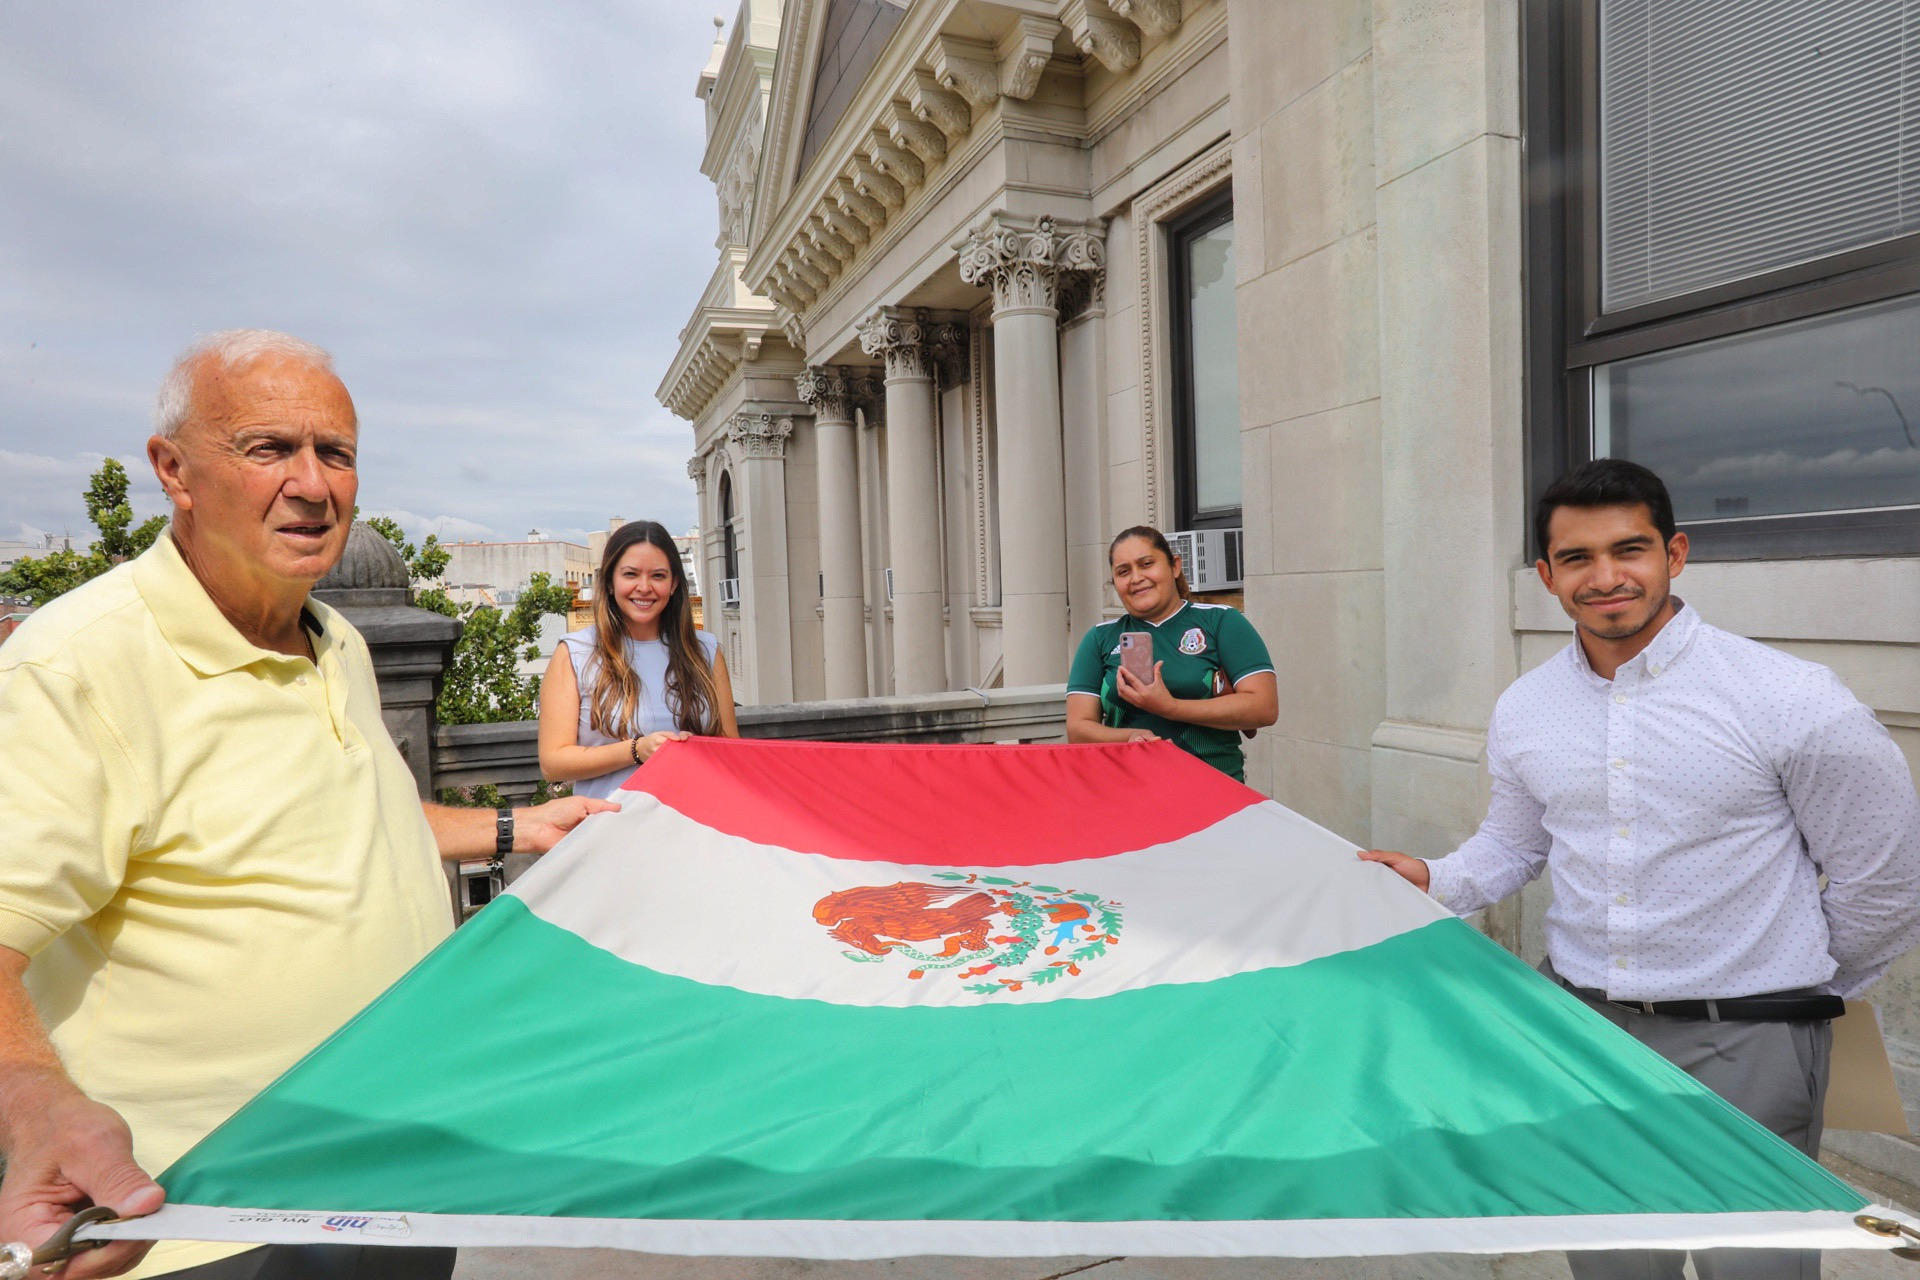 A group of people holding the flag before it is raised. The Mexican flag The Mexican flag appears against a cloud filled sky. The flag is designed with a tri a vertical tricolor of green, white and red with the National Coat of Arms centered on the white band.